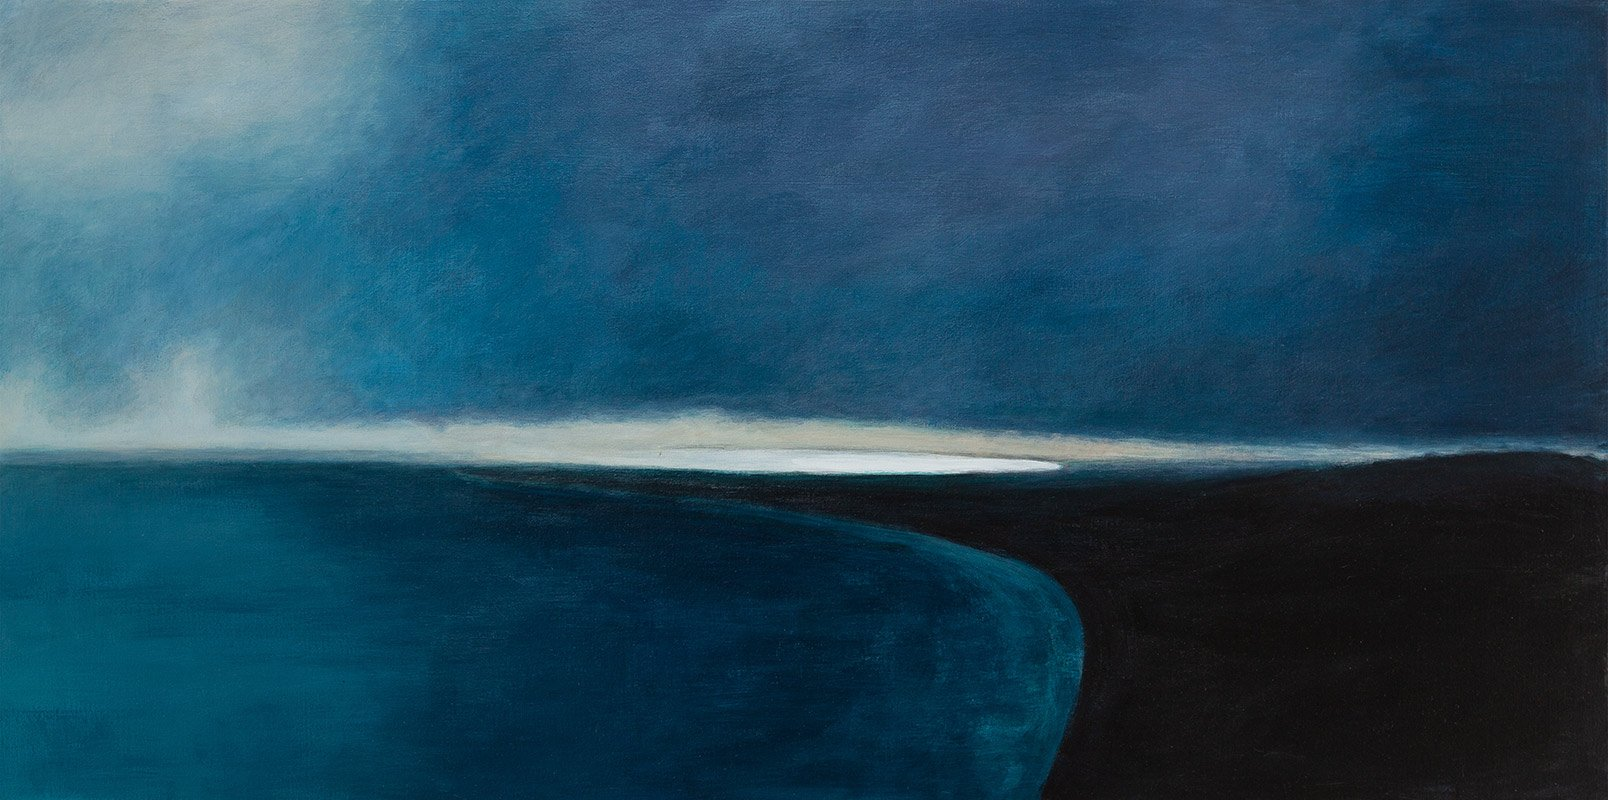 Gerda Leenards, here comes the ocean kapiti,  2019, 760 x 1520mm acrylic on canvas